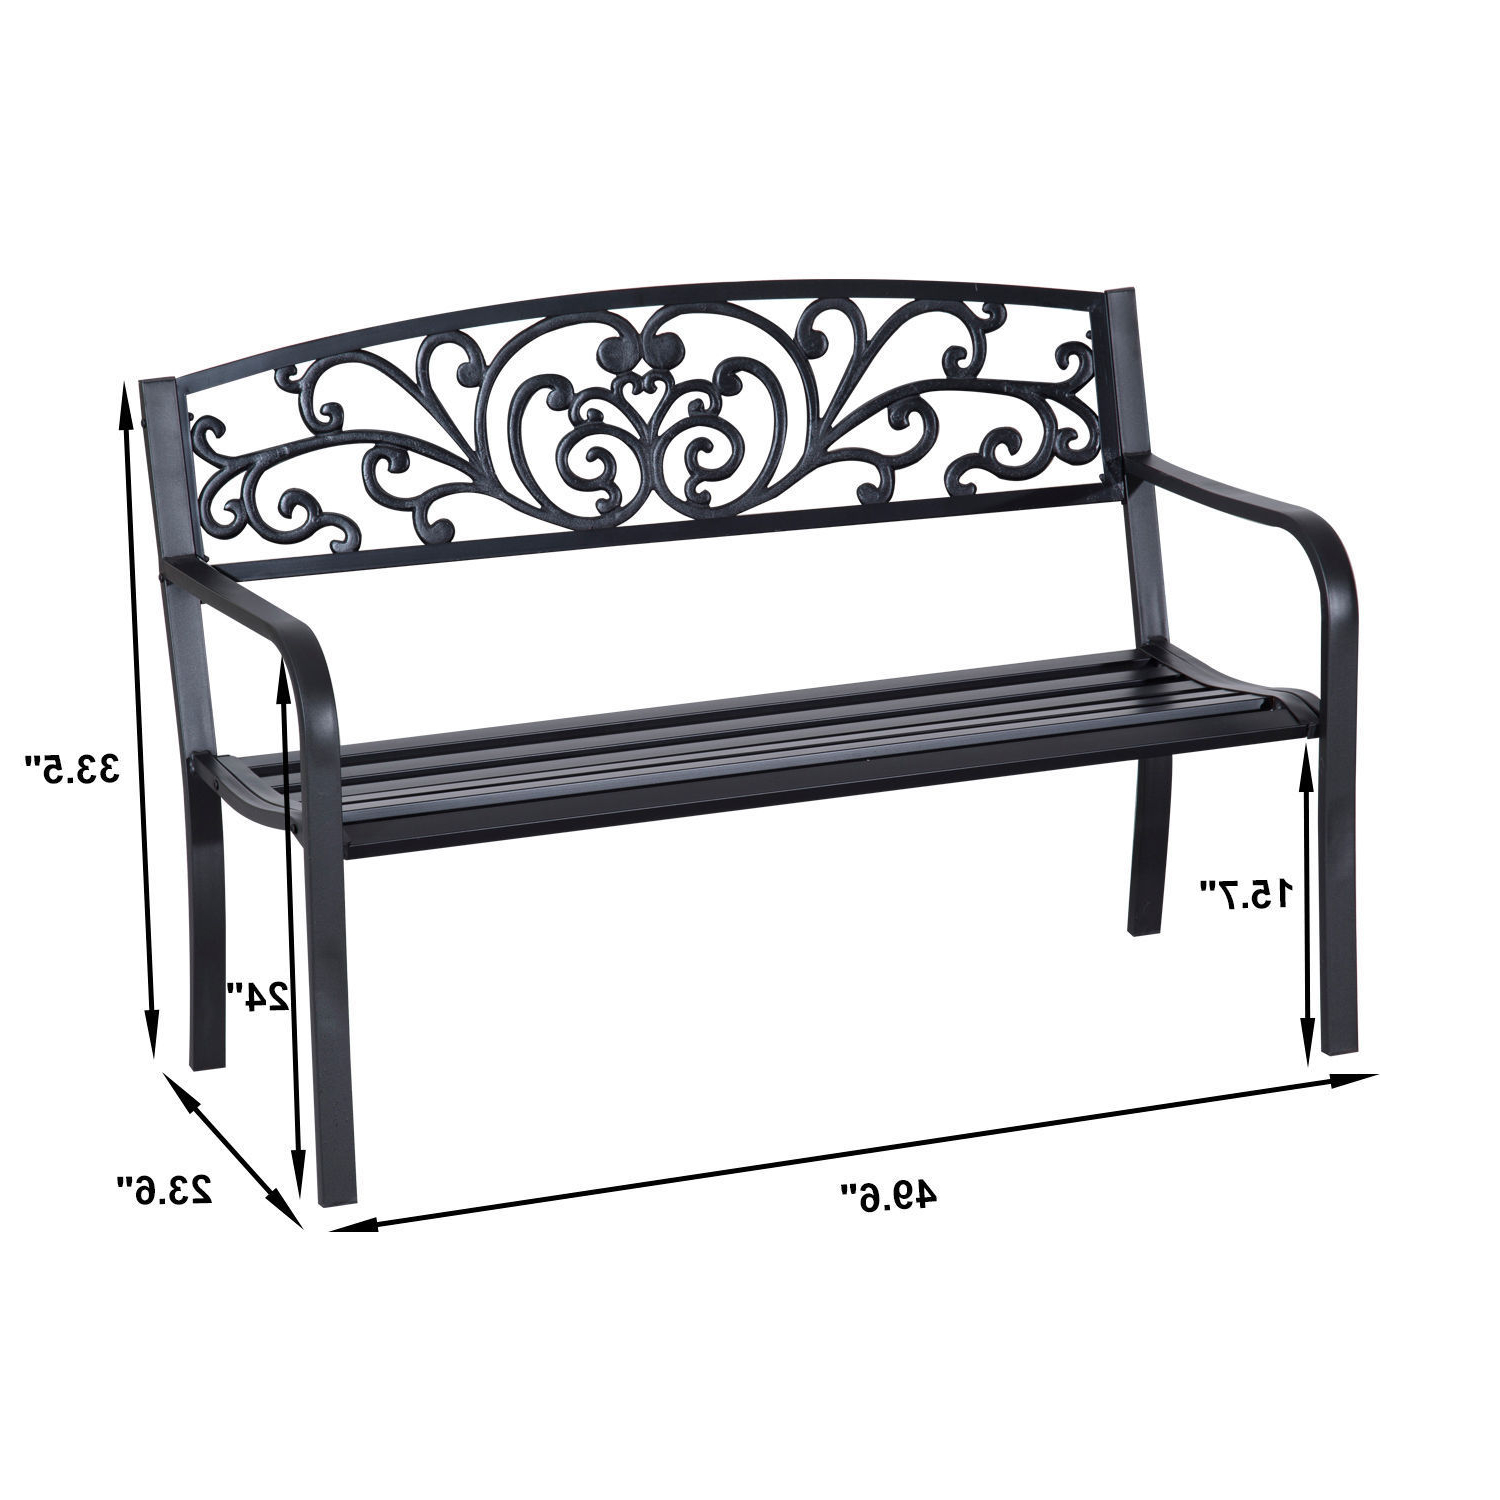 Black Outdoor Durable Steel Frame Patio Swing Glider Bench Chairs For Most Current Patio Park Garden Bench Porch Path Chair Outdoor Lawn Garden Black 2 Seat (Gallery 12 of 25)